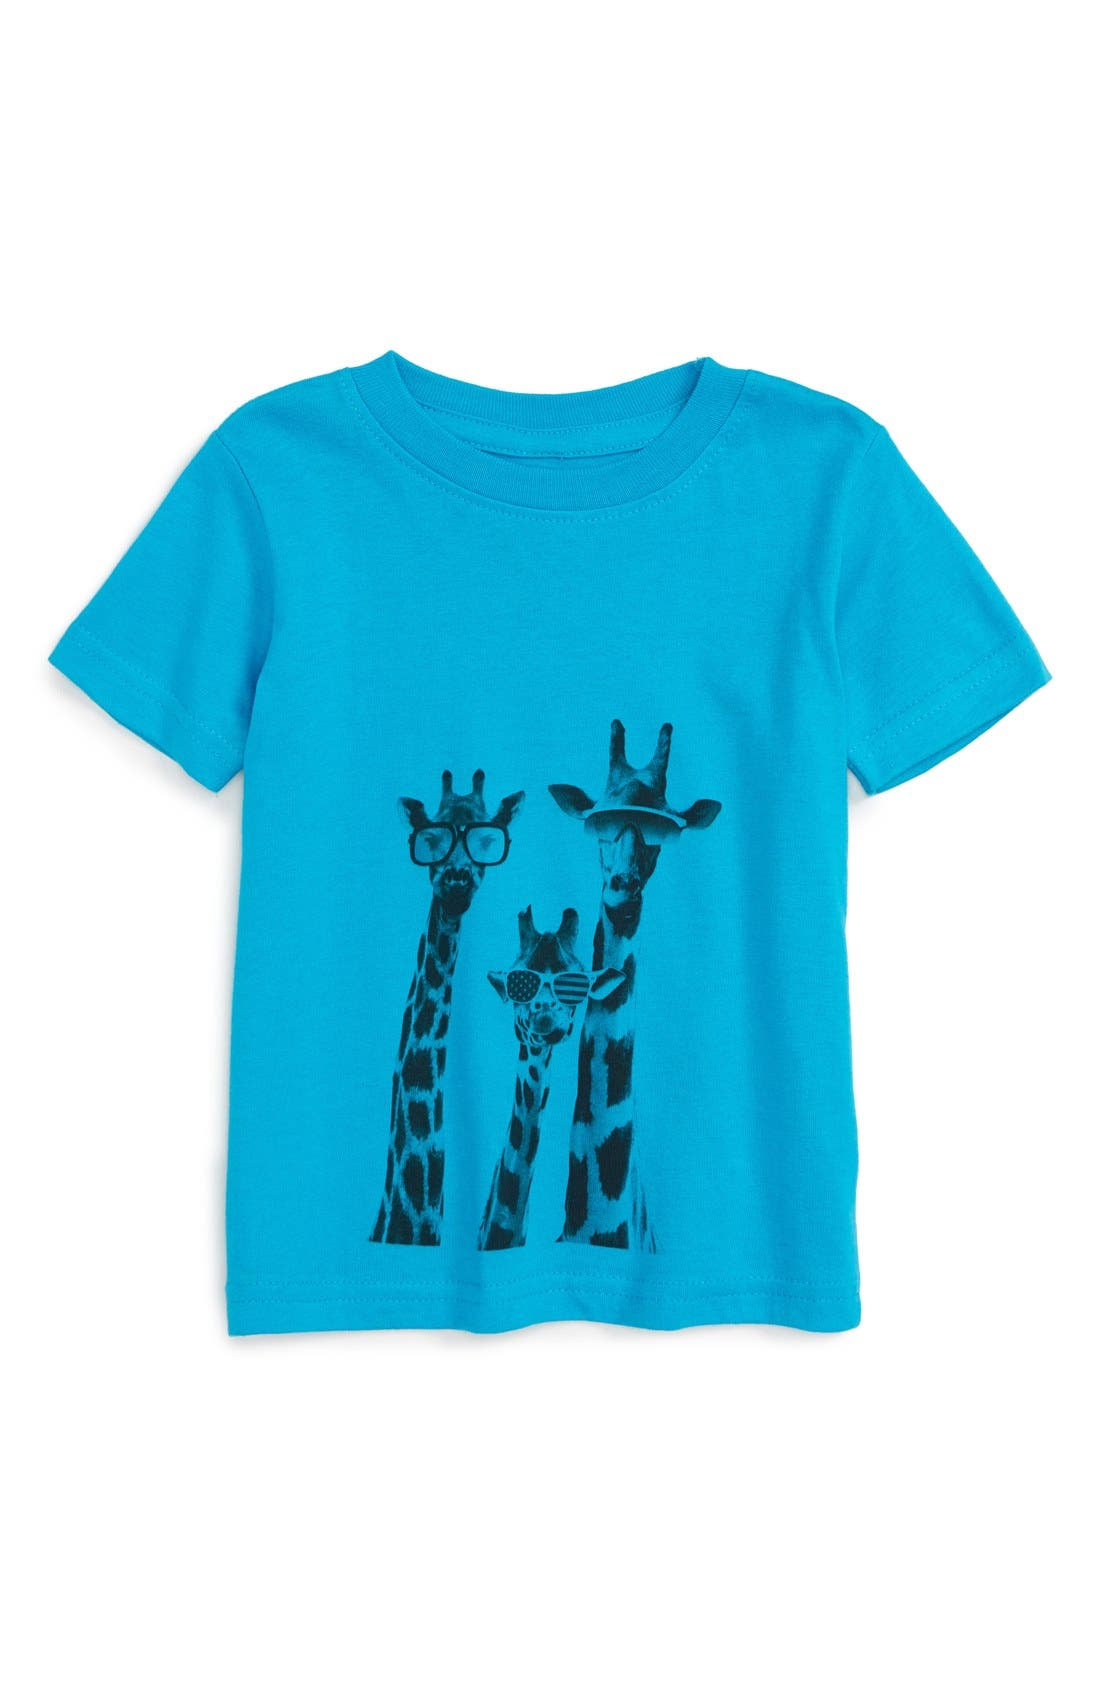 KID DANGEROUS 'Giraffes' T-Shirt